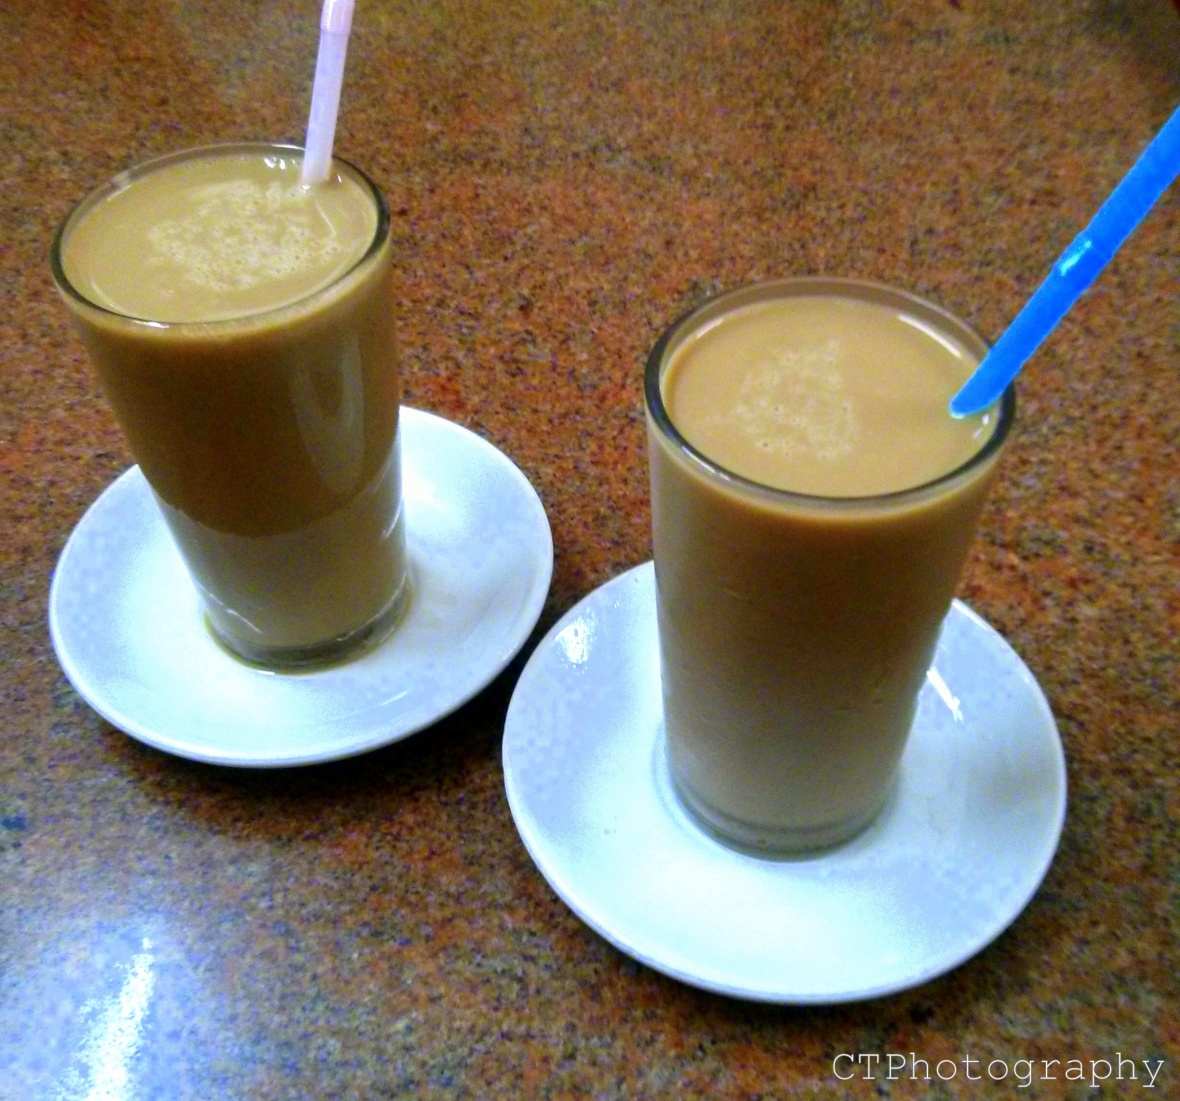 cold coffee at indian coffee house